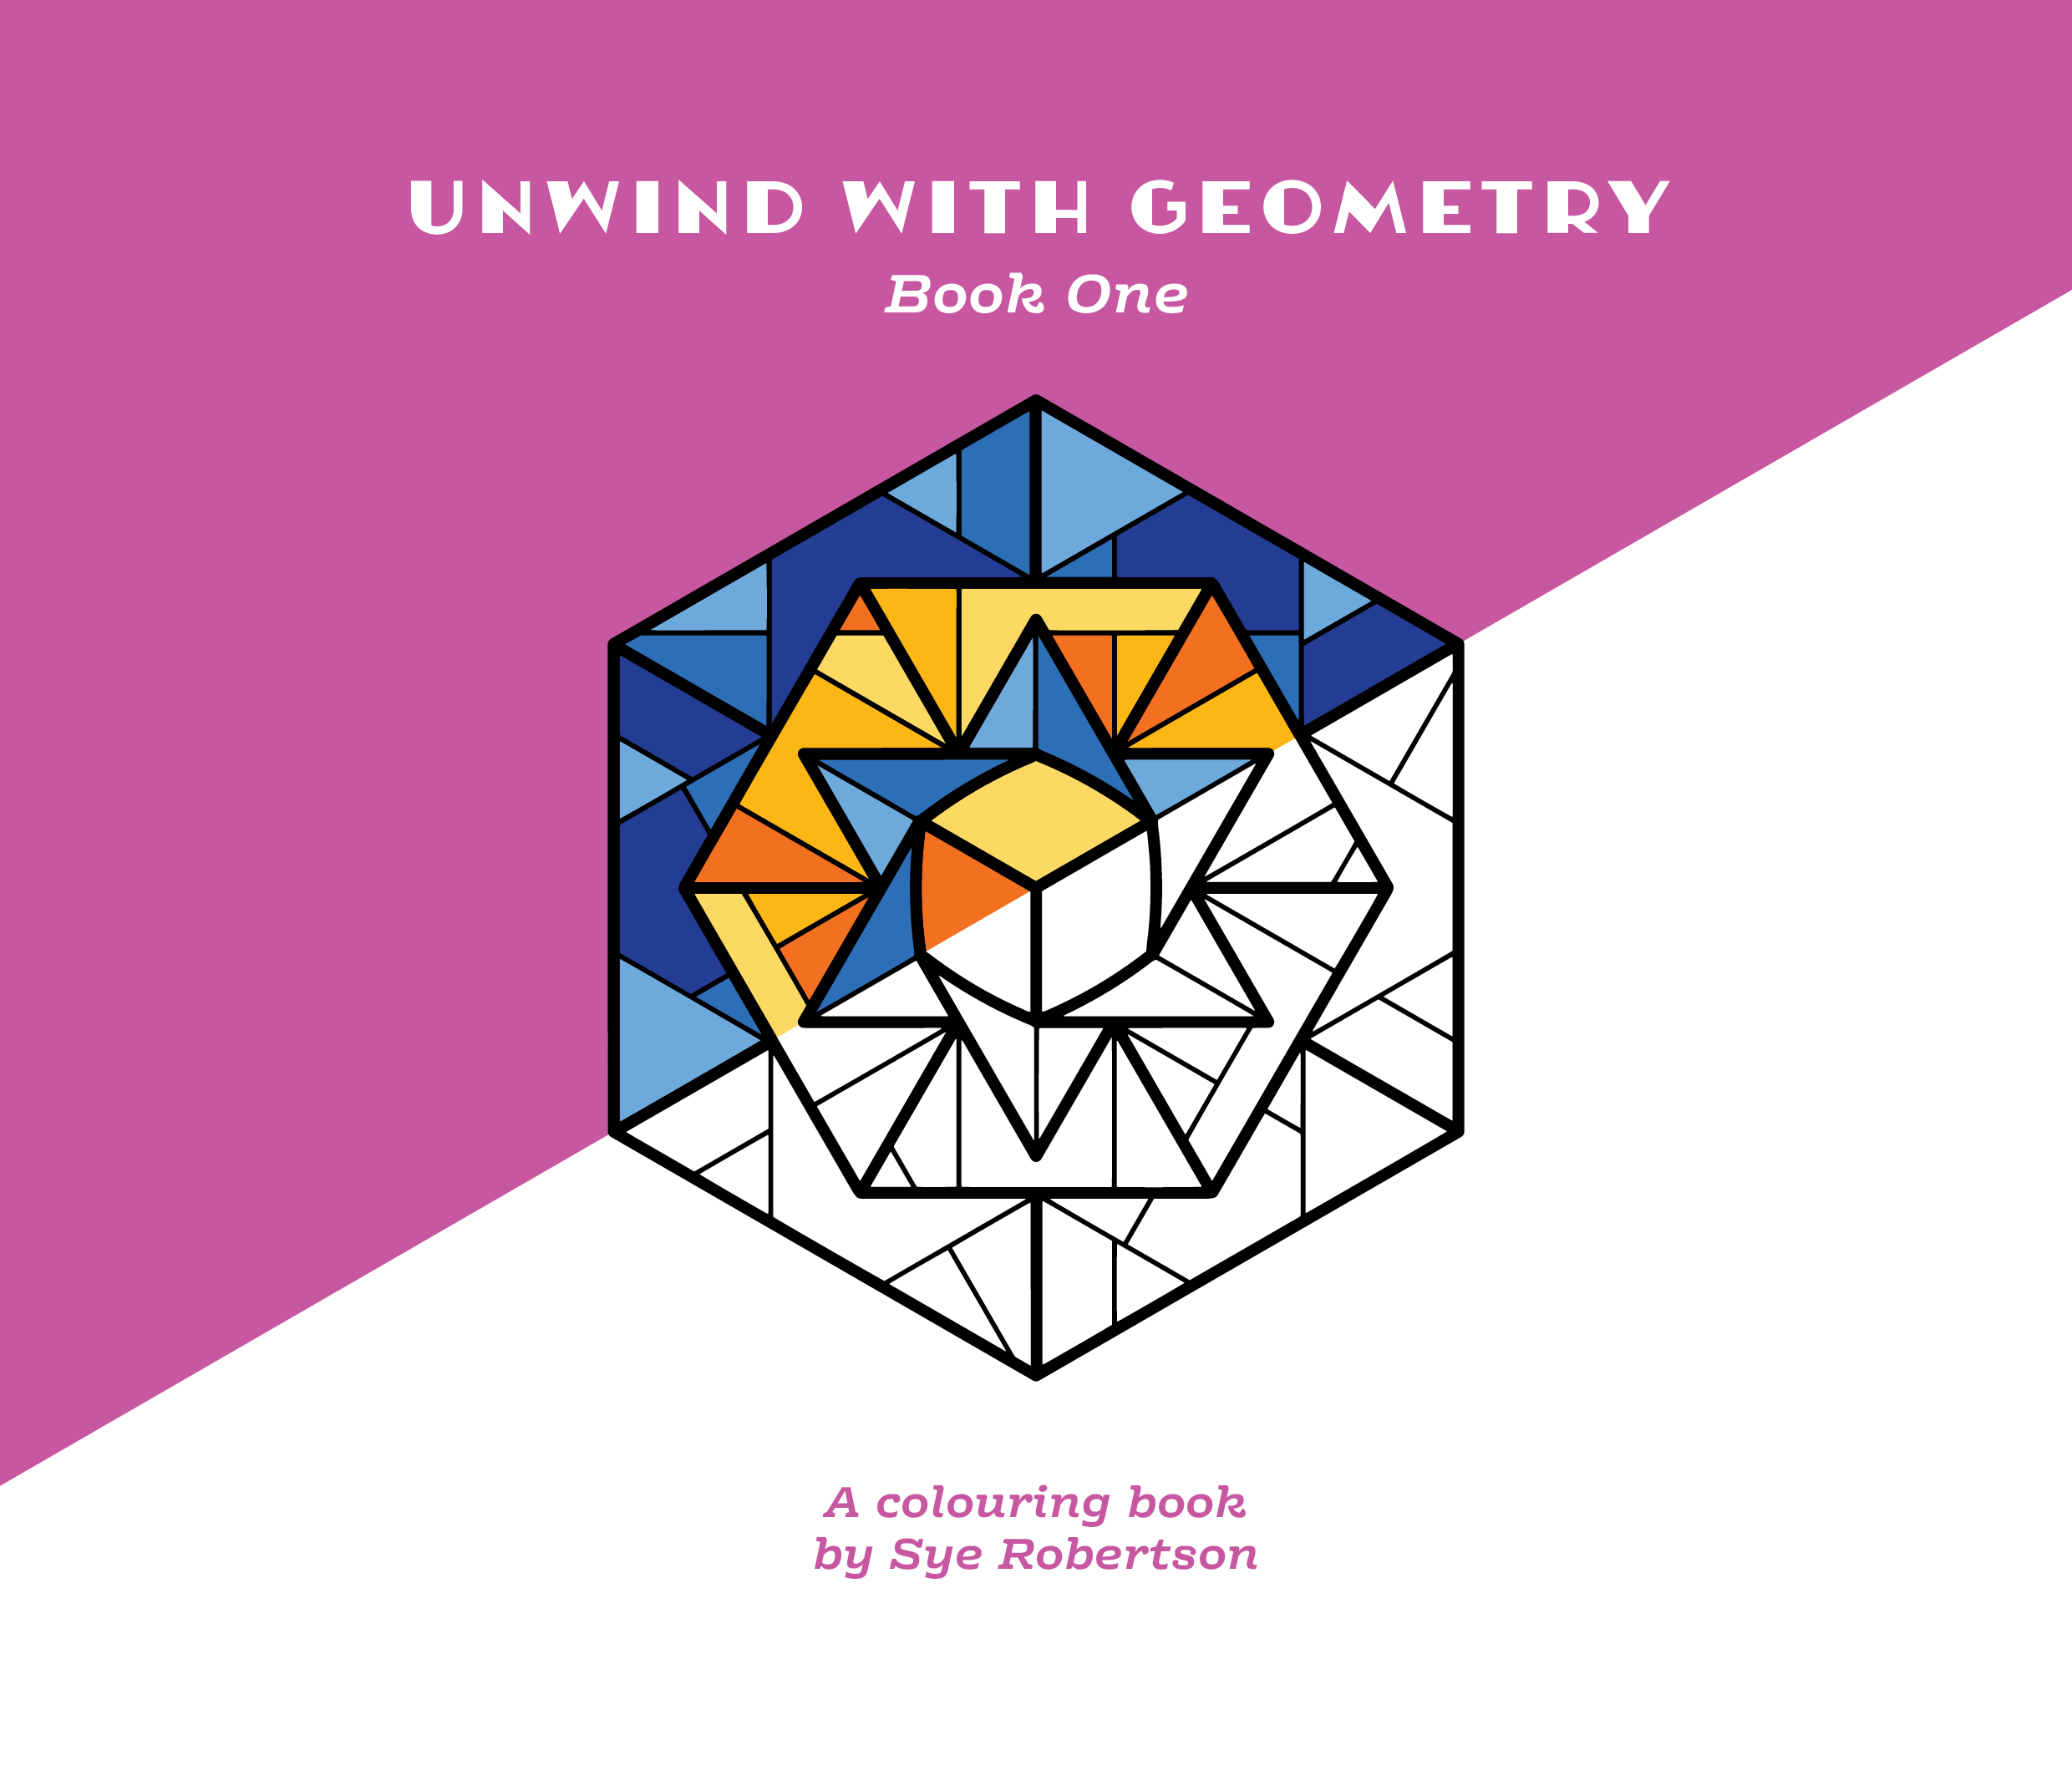 Unwind-with-Geometry-Book-One_SyRobertson.png